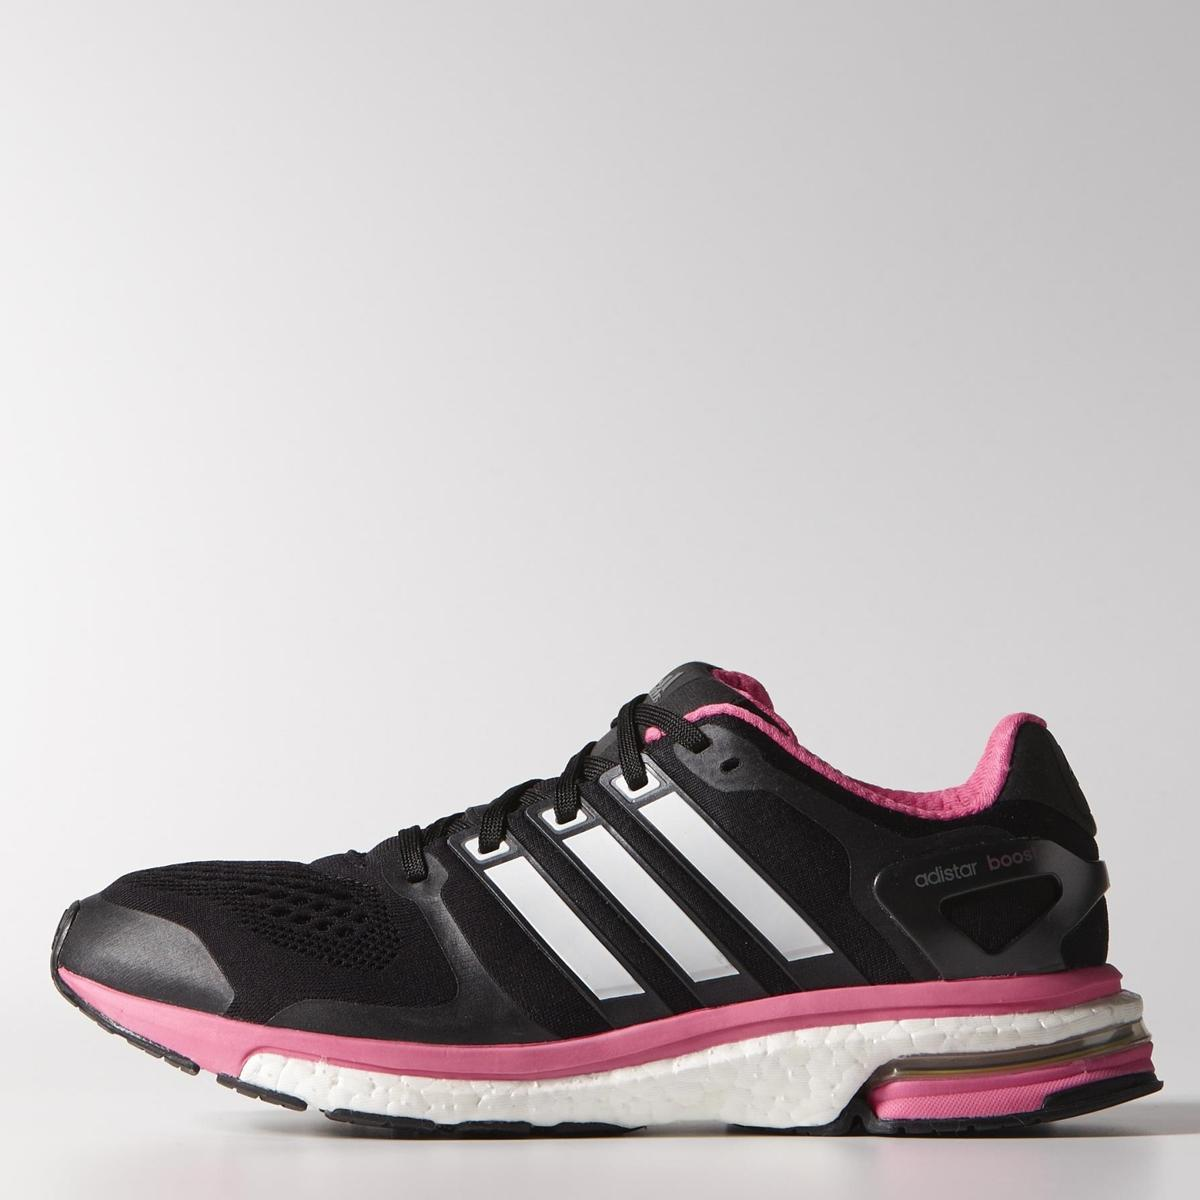 Adidas Adizero Boston Boost 6 Womens Pink Orange Sneakers ...